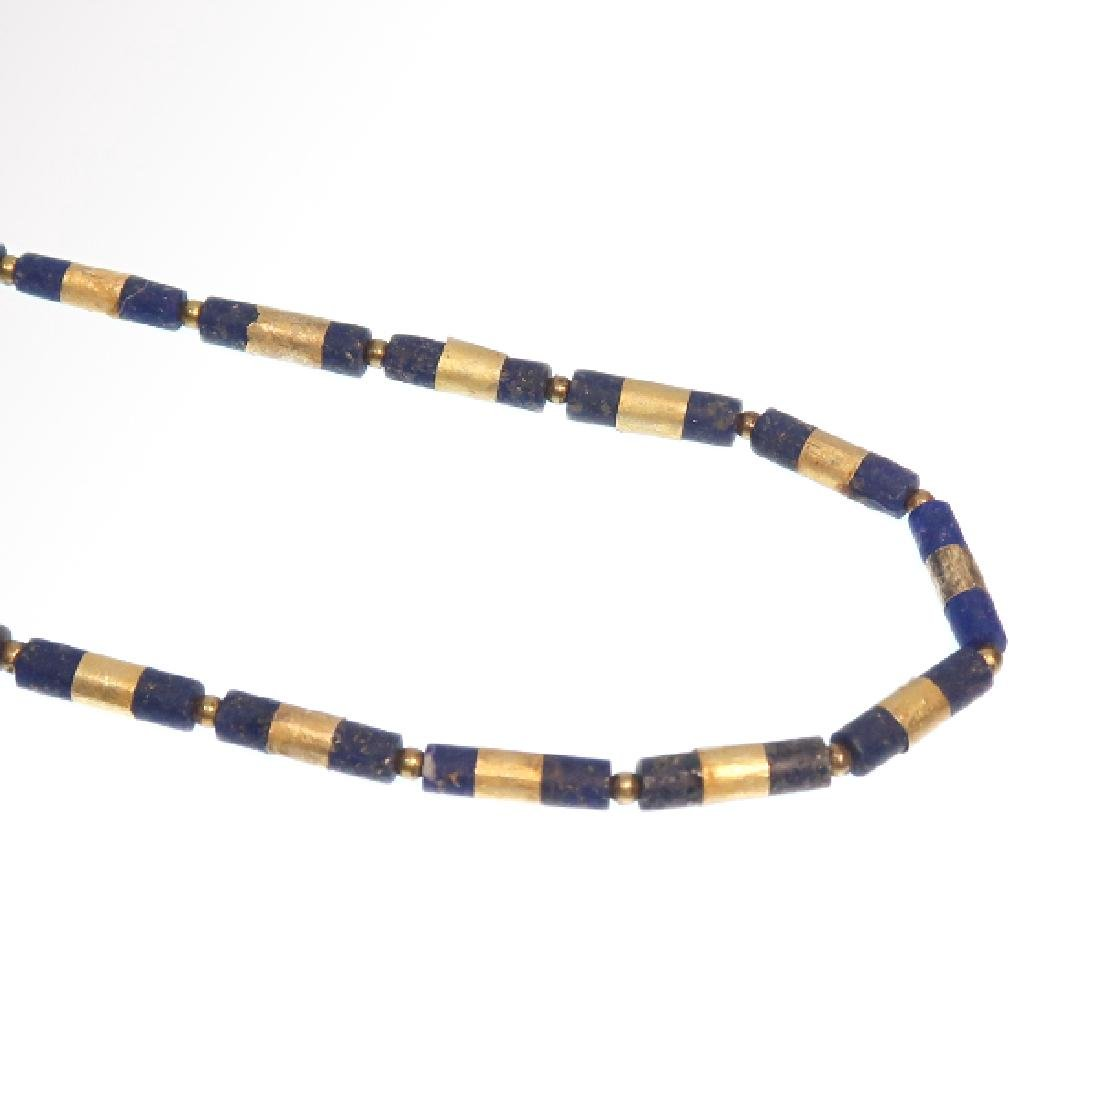 Egyptian Lapis and Gold Necklace, c. 300-200 B.C. - 3